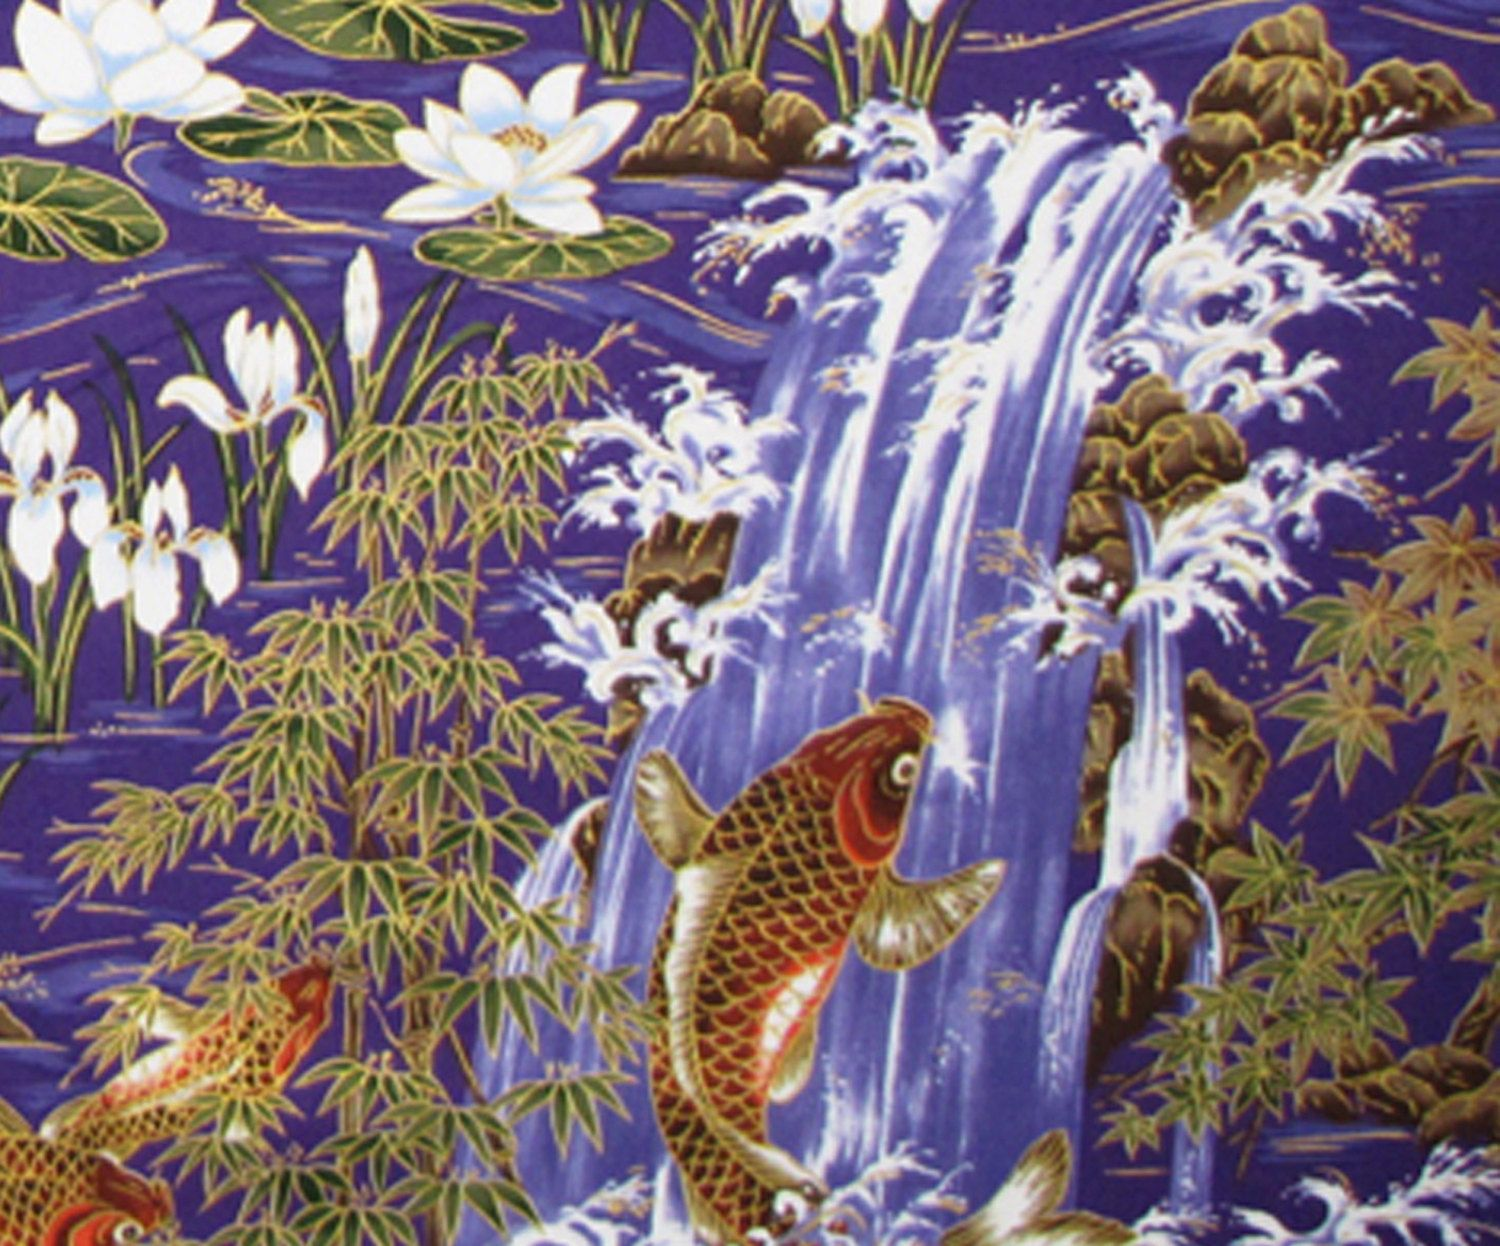 Japanese Fabric Koi Fish Lotus Flowers Water Lily Bamboo For